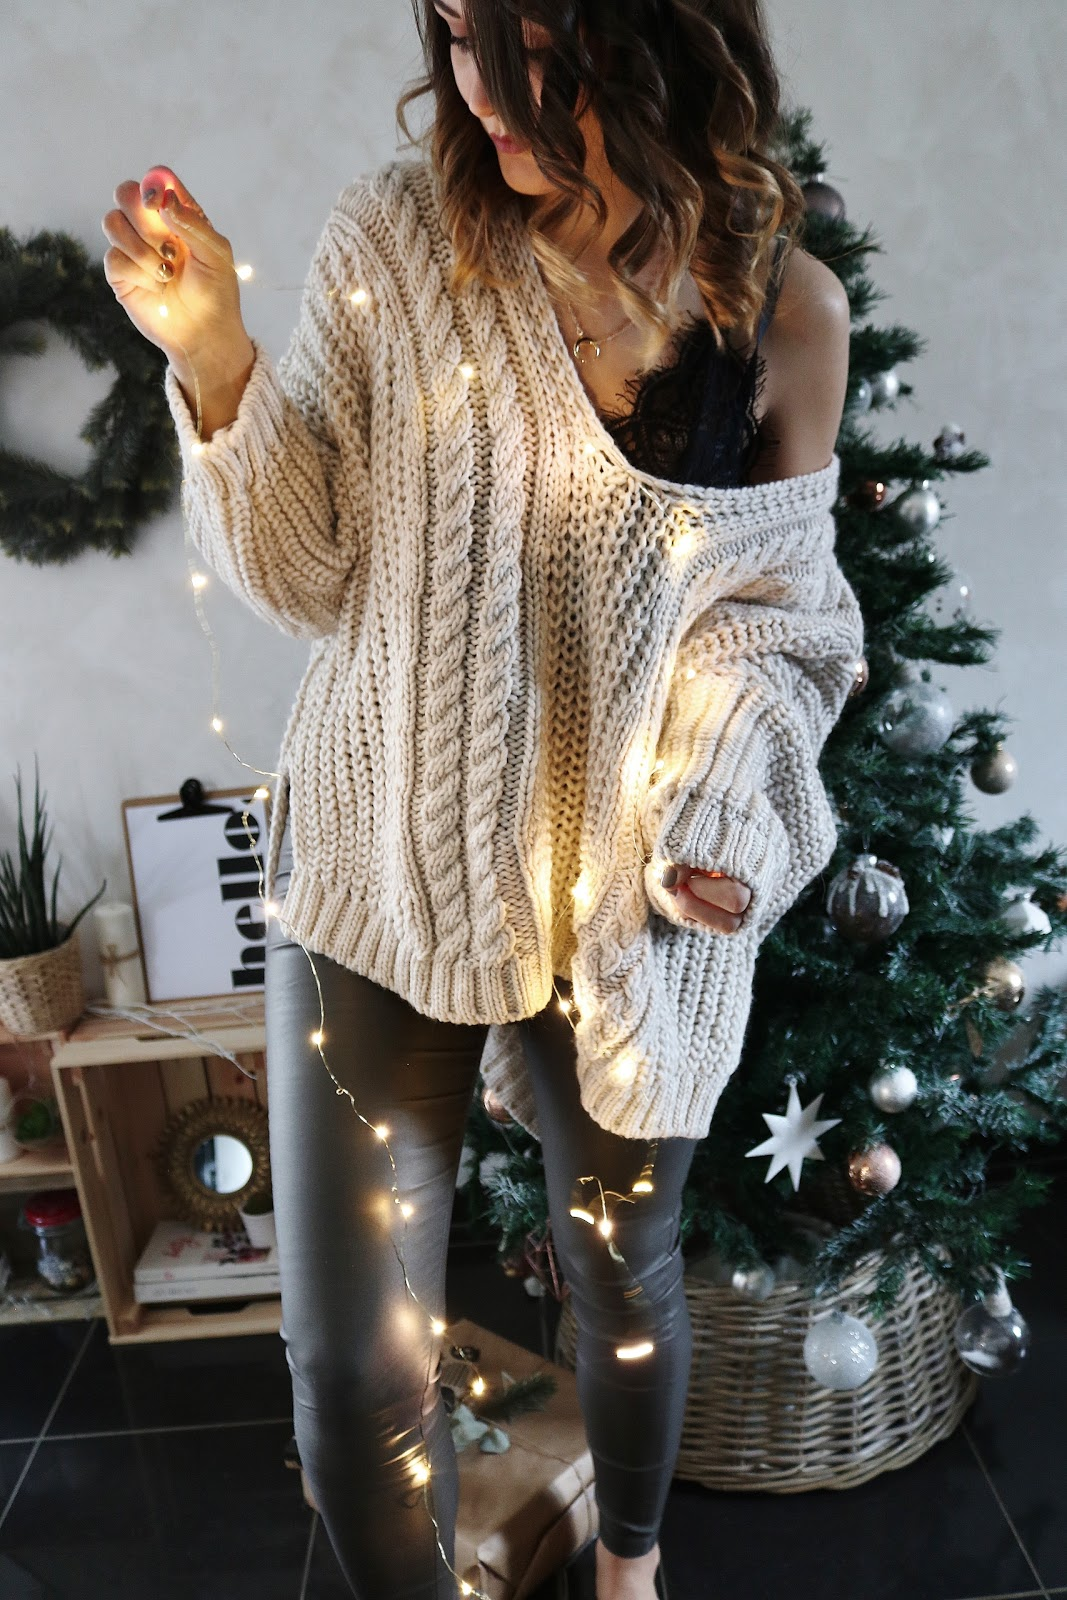 pauline-dress-bon-plan-soldes-light-guirlande-mode-blog-deco-lifestyle-besancon-2018-fille-doubs